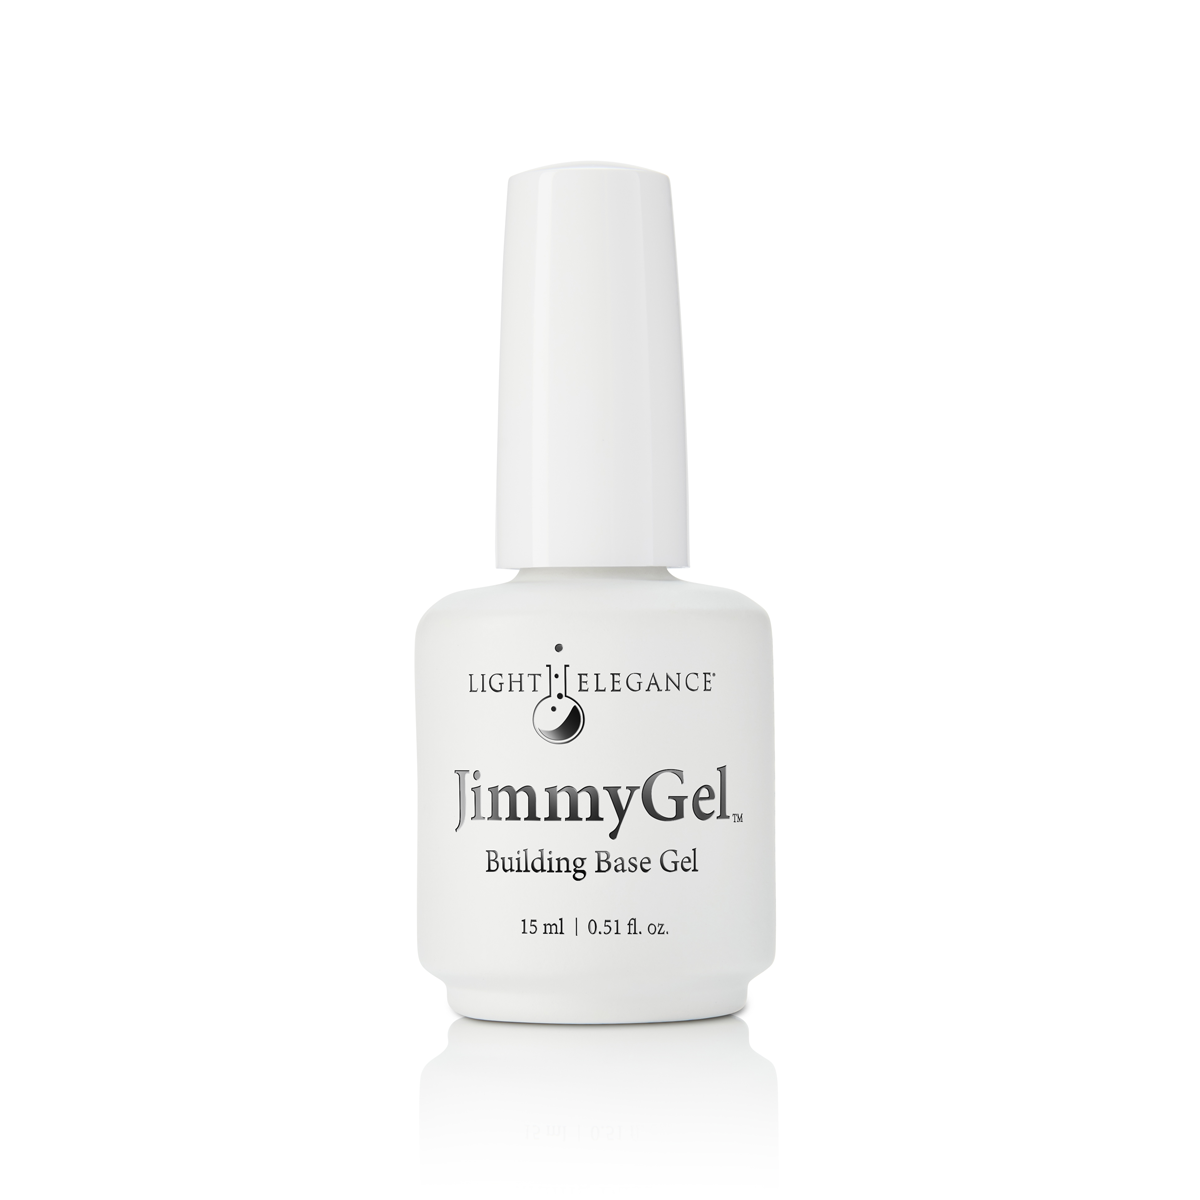 JIMMYGEL BUILDING BASE IN A BOTTLE, 15 ML